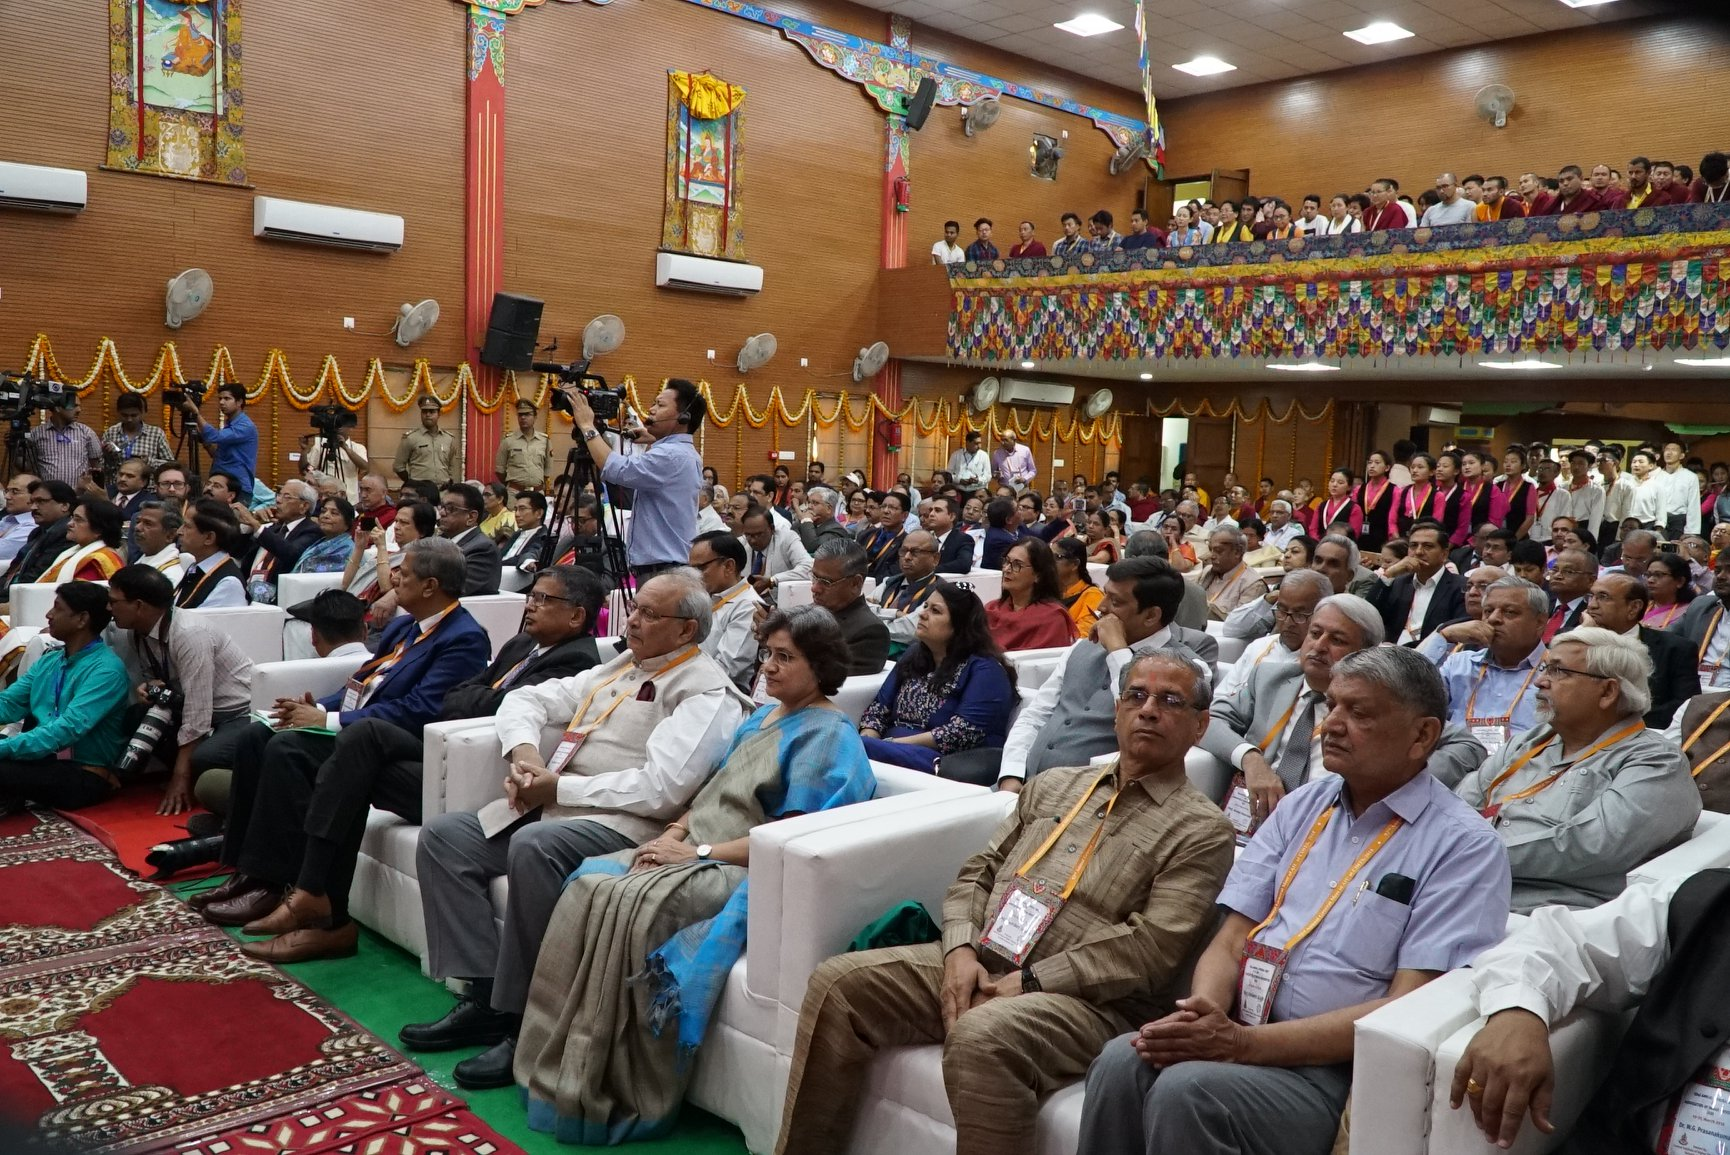 de4f807c7bf2 ... across India taking part in the 92nd Annual General Meet of Association  of Indian Universities at Central Institute of Higher Tibetan Studies, ...